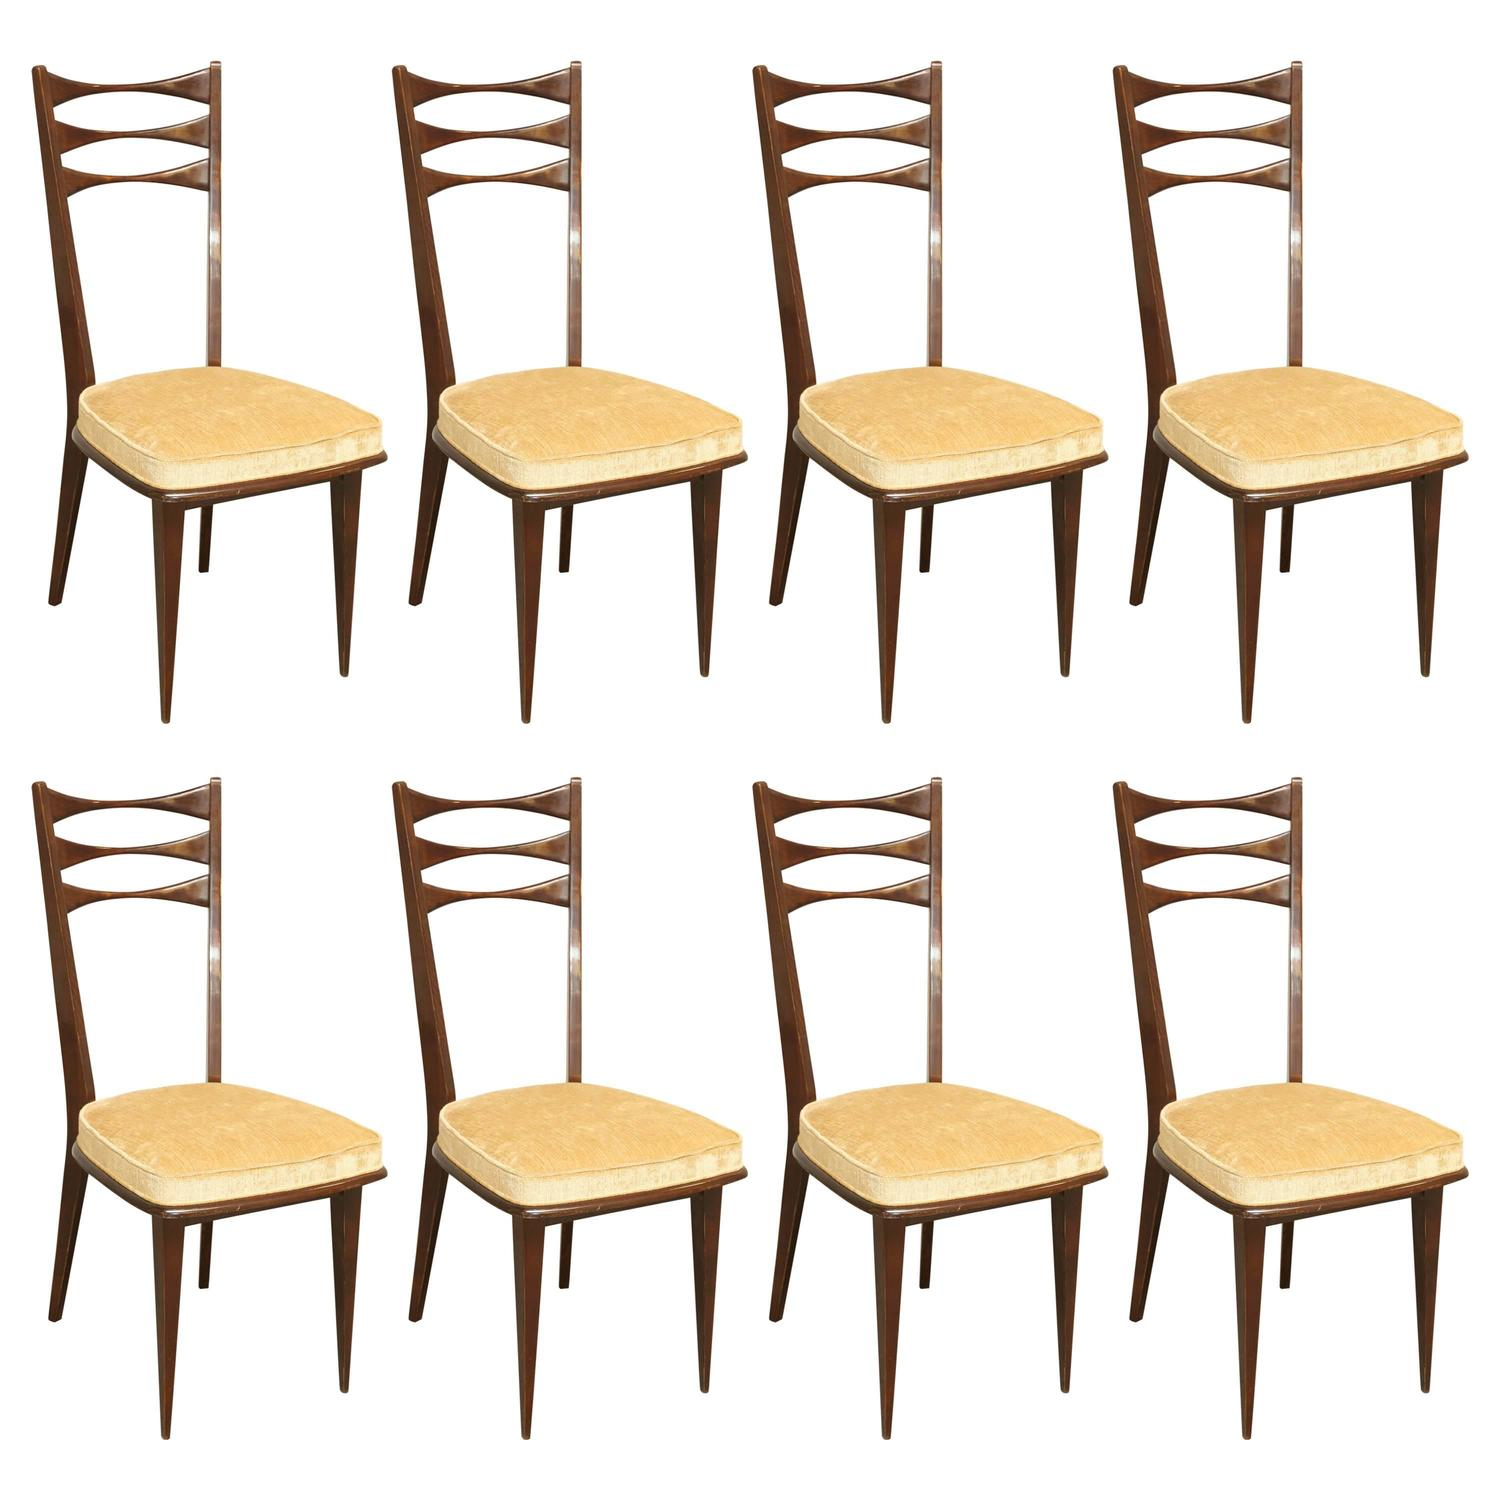 Eight Midcentury Dining Chairs In Rosewood At 1stdibs